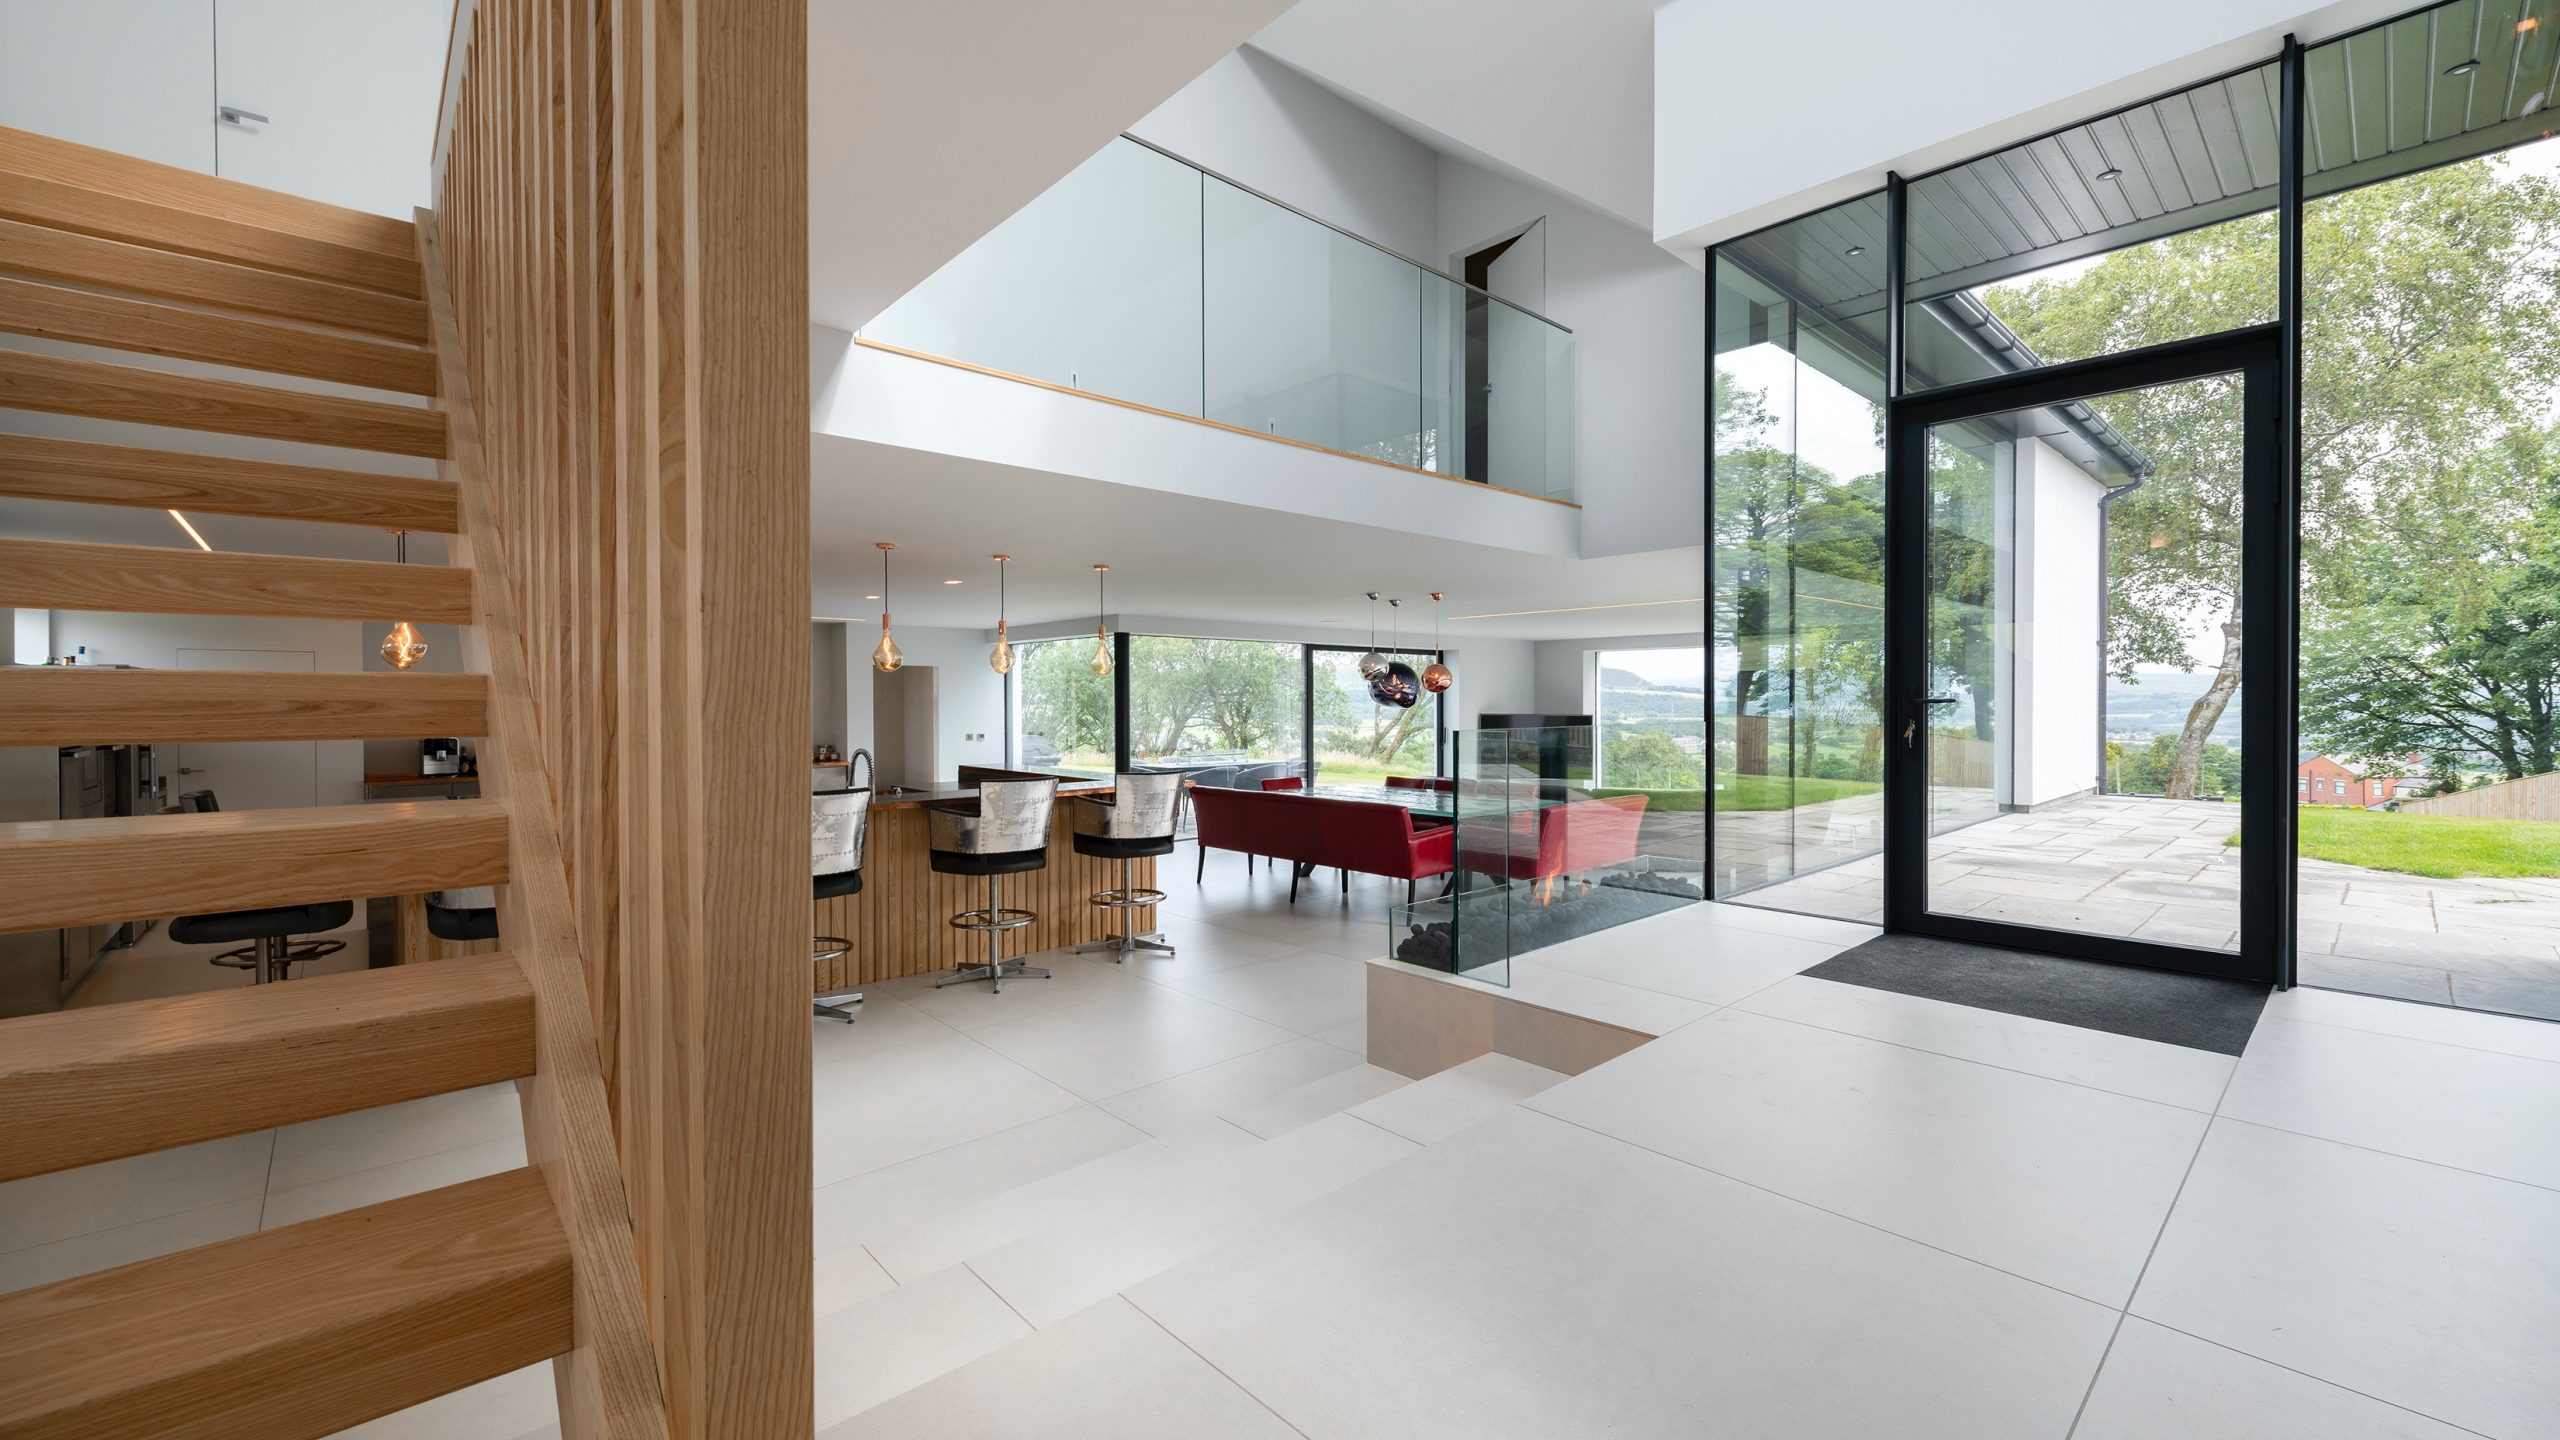 Interior of newly built house